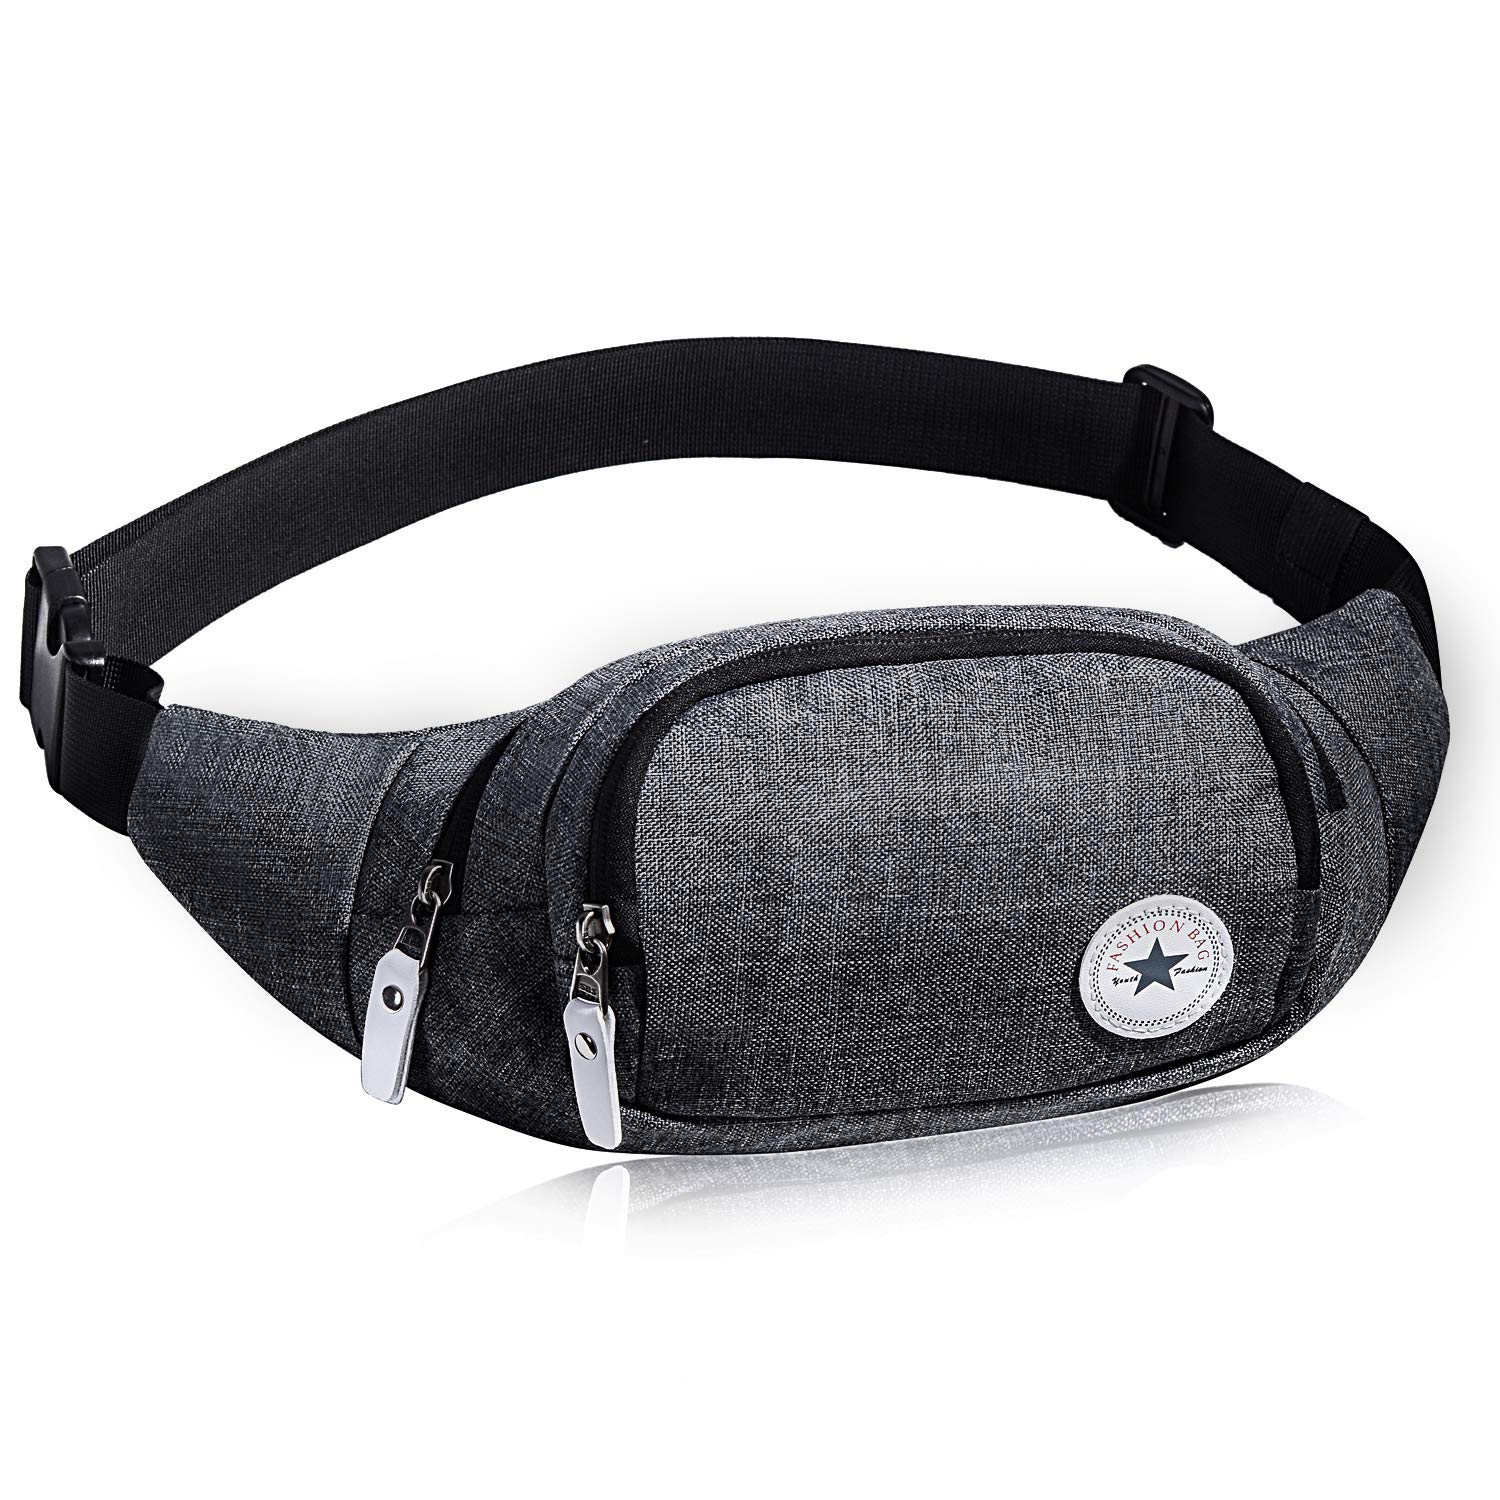 Evaduol Multifunctional Bumbags, High-Capacity Fashion Fanny Packs, Adjustable Blet Waist Bag, Grey.